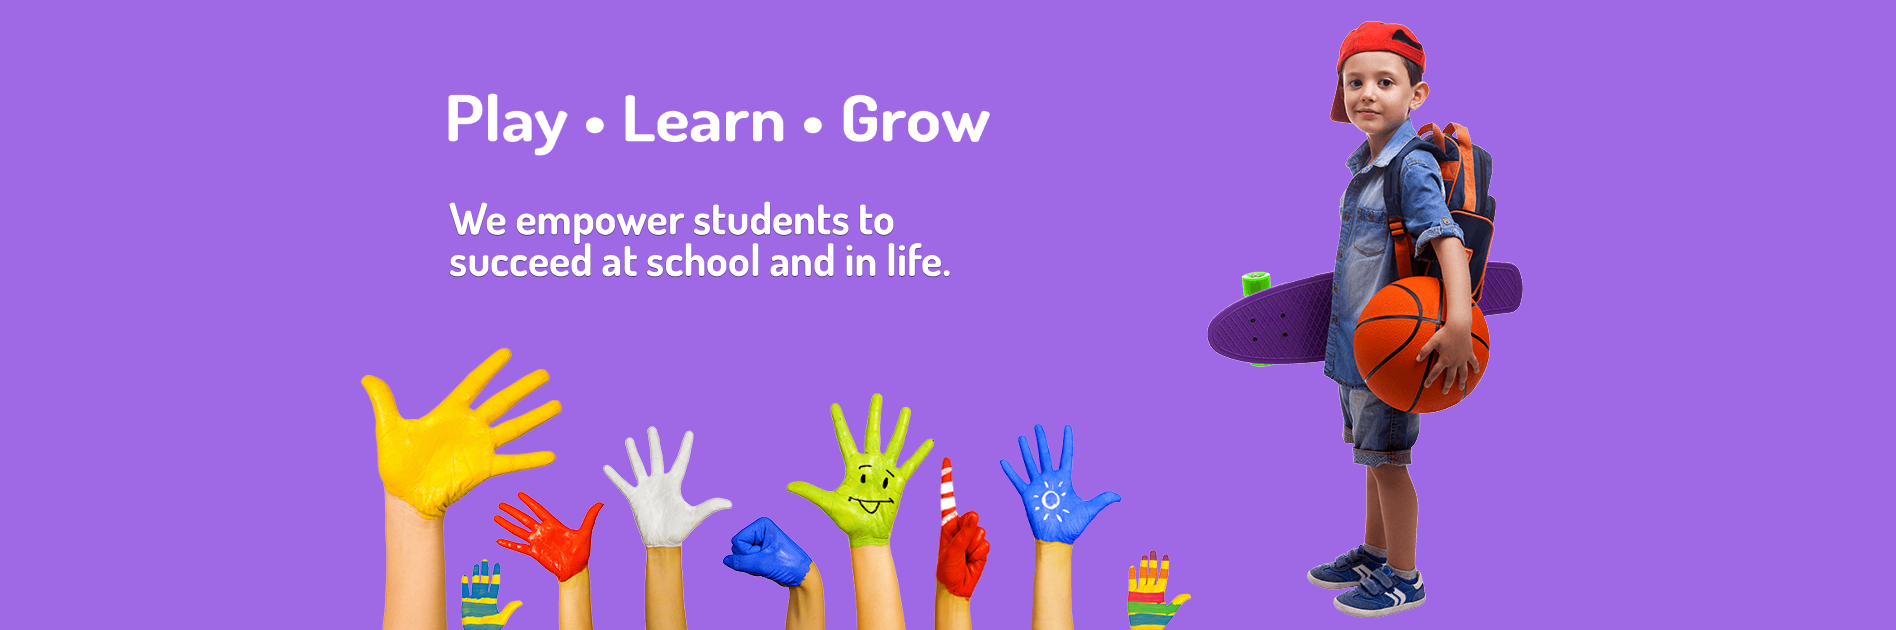 Play-Learn-Grow-graphic